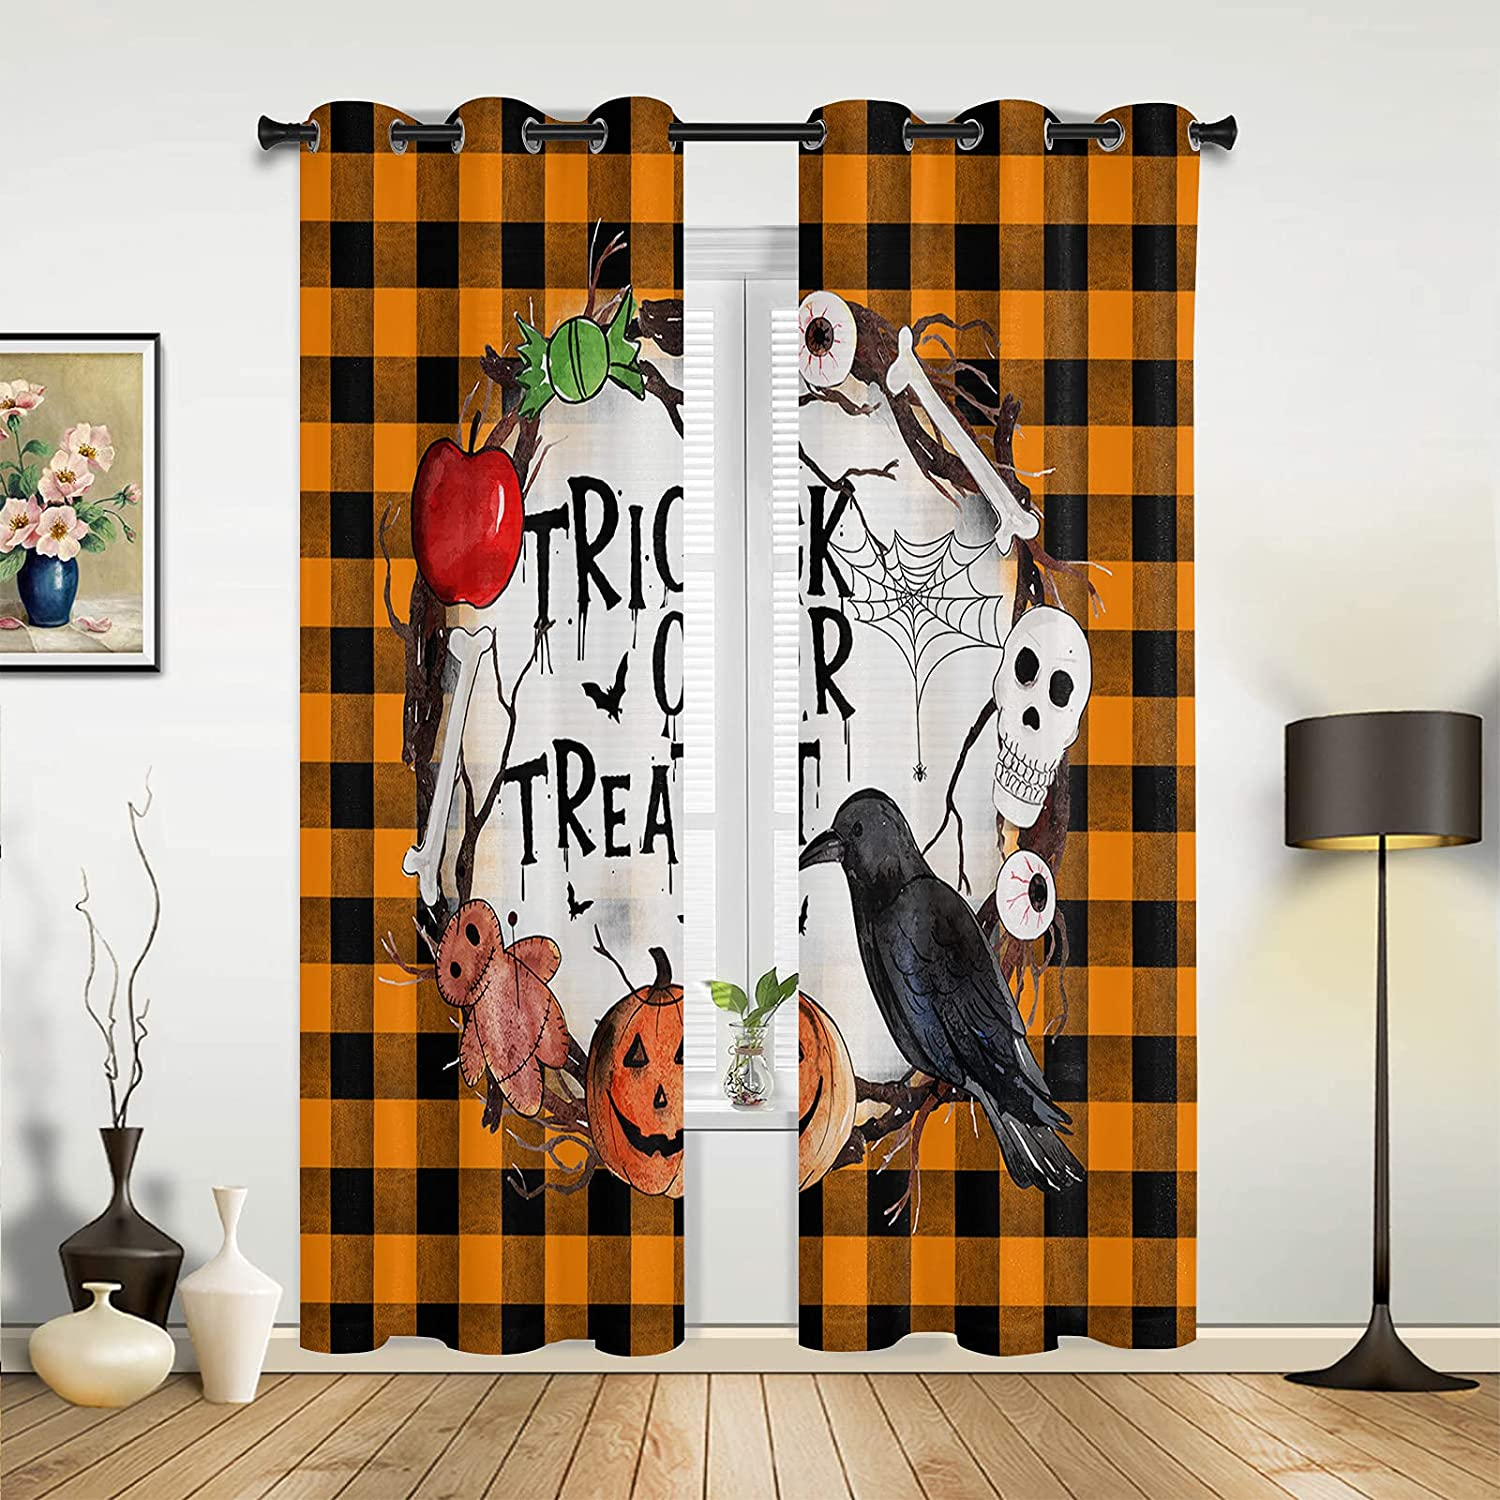 Window Sheer Regular store Curtains for Bedroom specialty shop Living or Hal Treat Trick Room